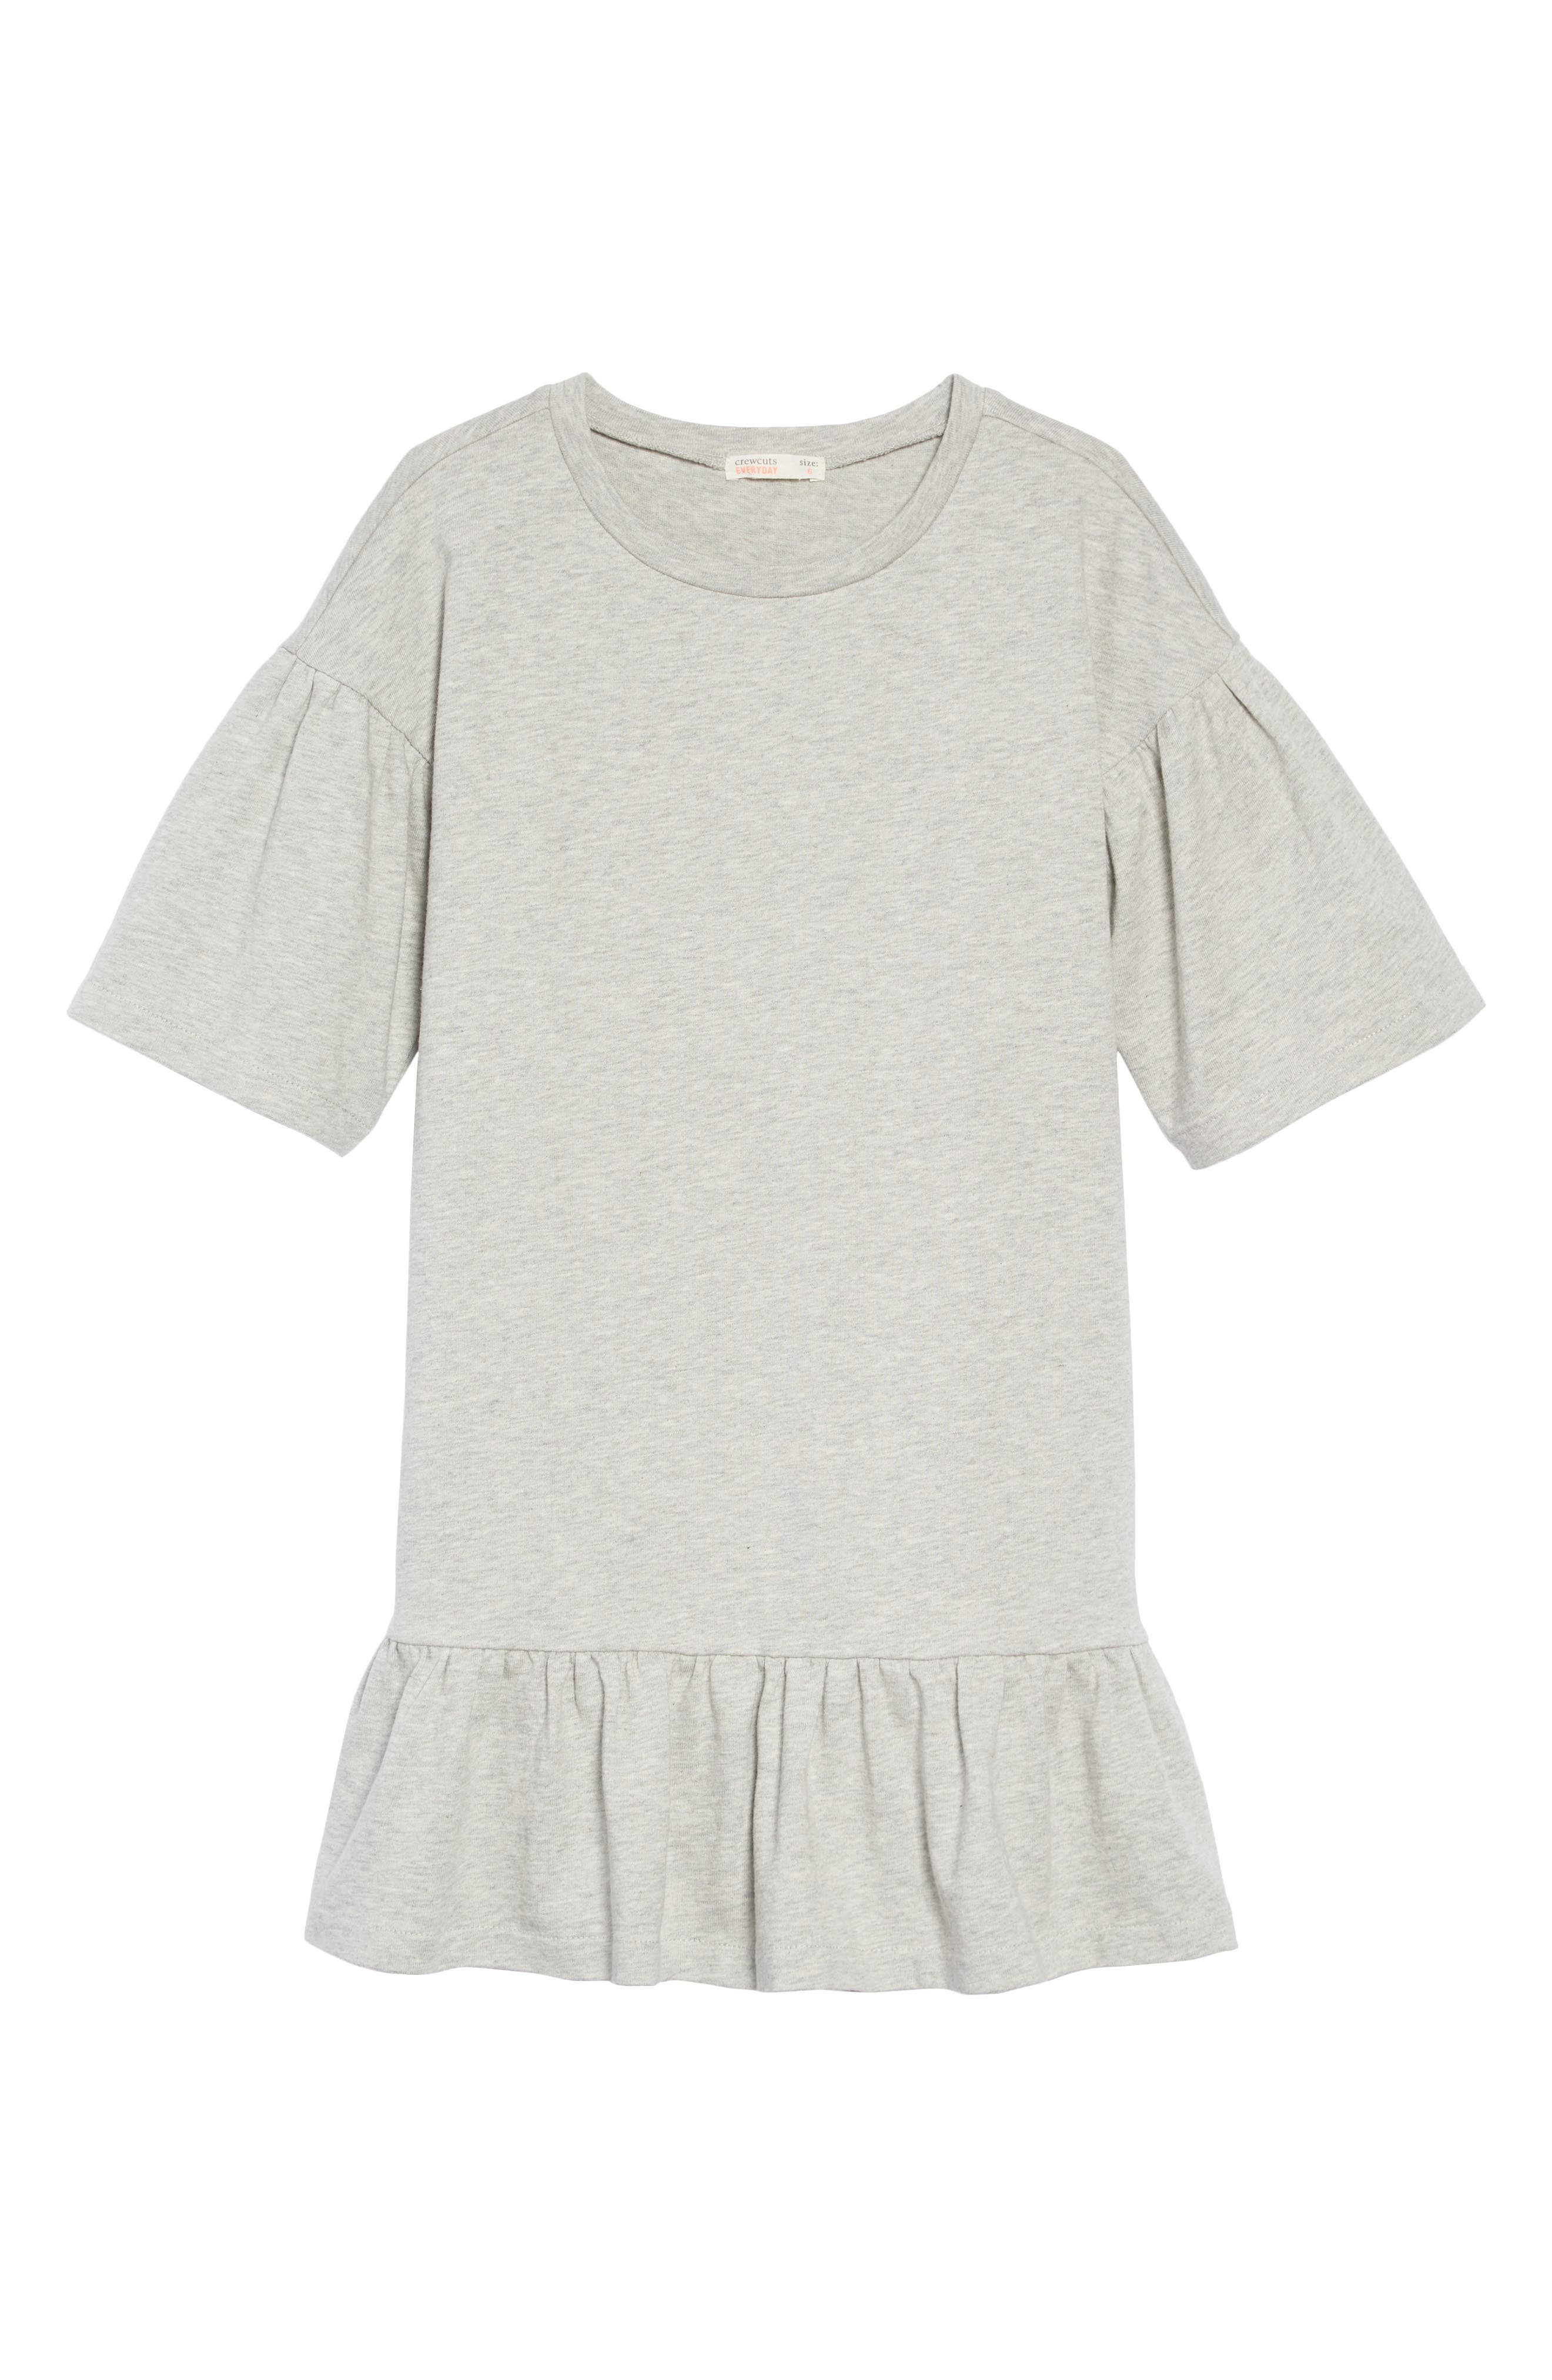 Drop Waist T-Shirt Dress,                             Main thumbnail 1, color,                             HEATHER DUSK